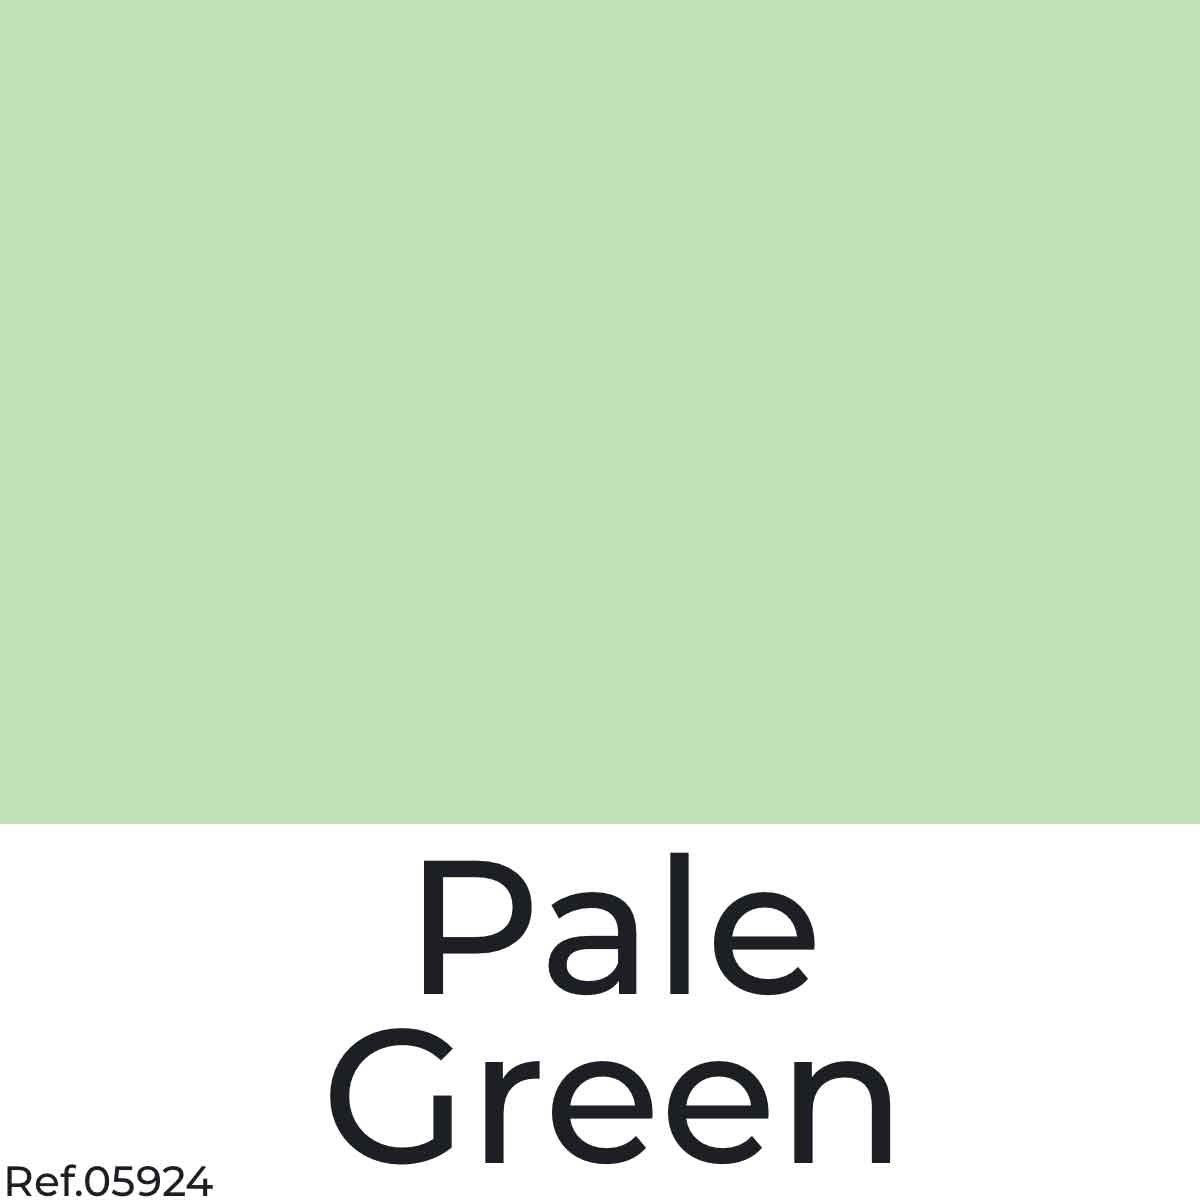 Pale Green Color Poster Paper from najamonline.com Abu Dhabi - UAE